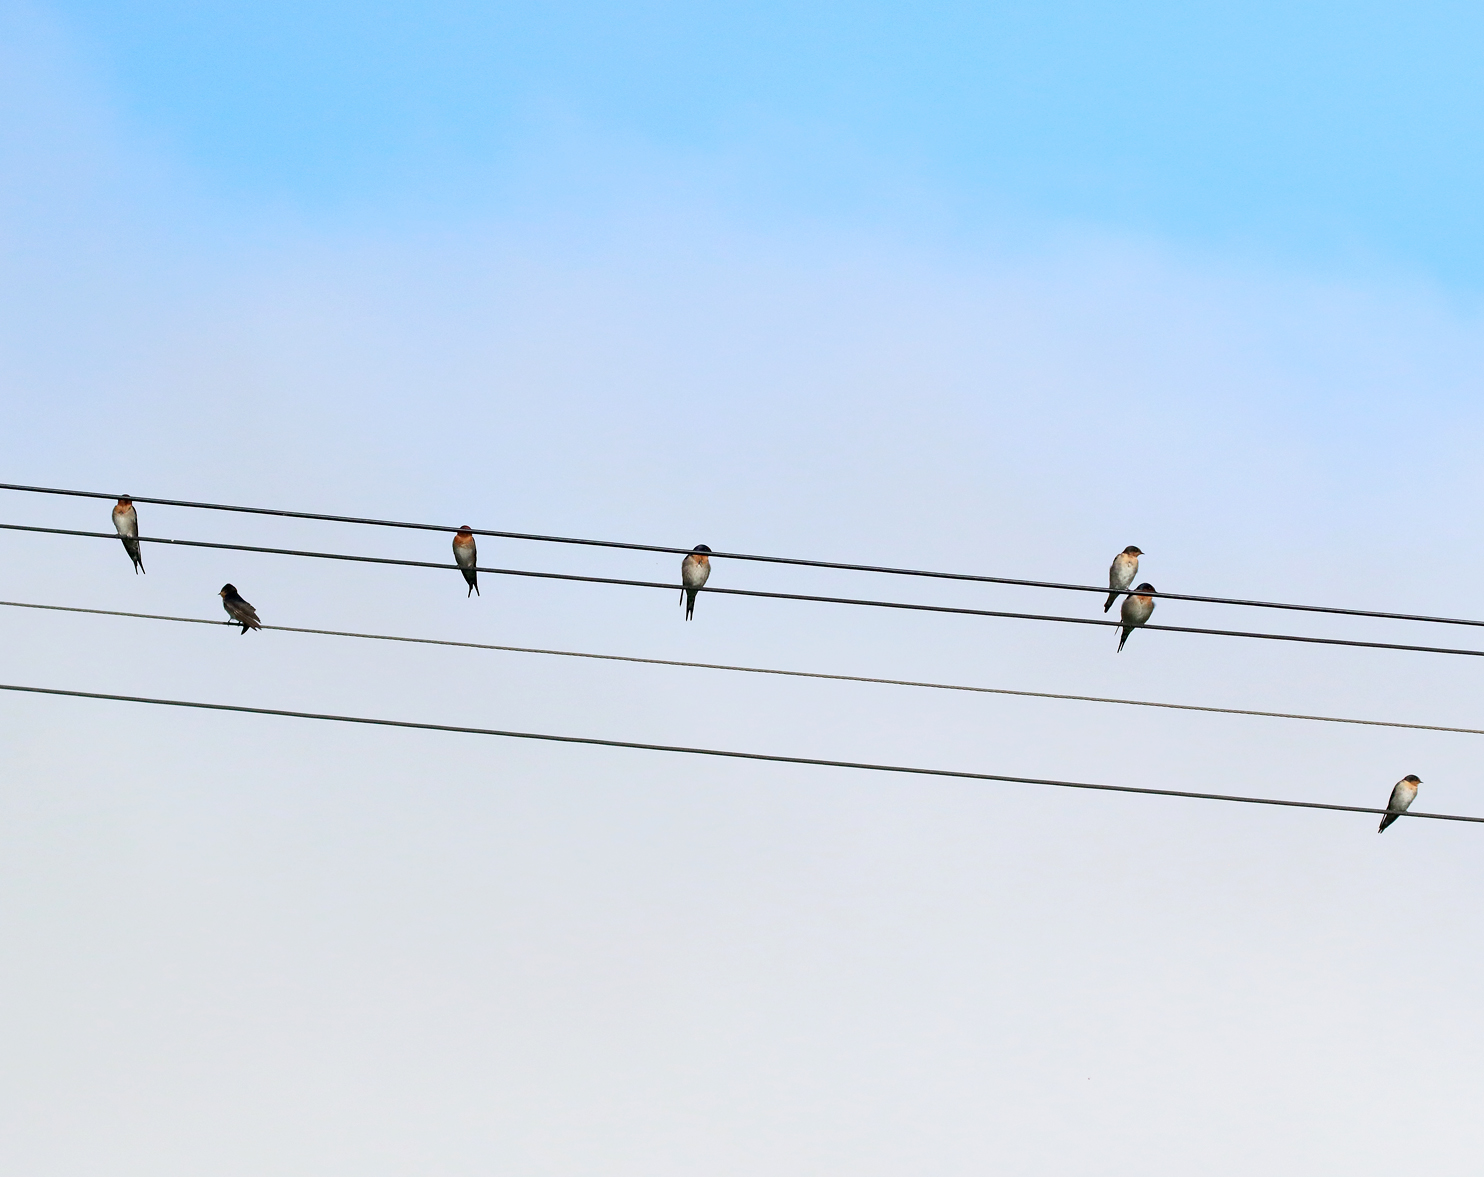 1V8A5718 swallows on wire.JPG